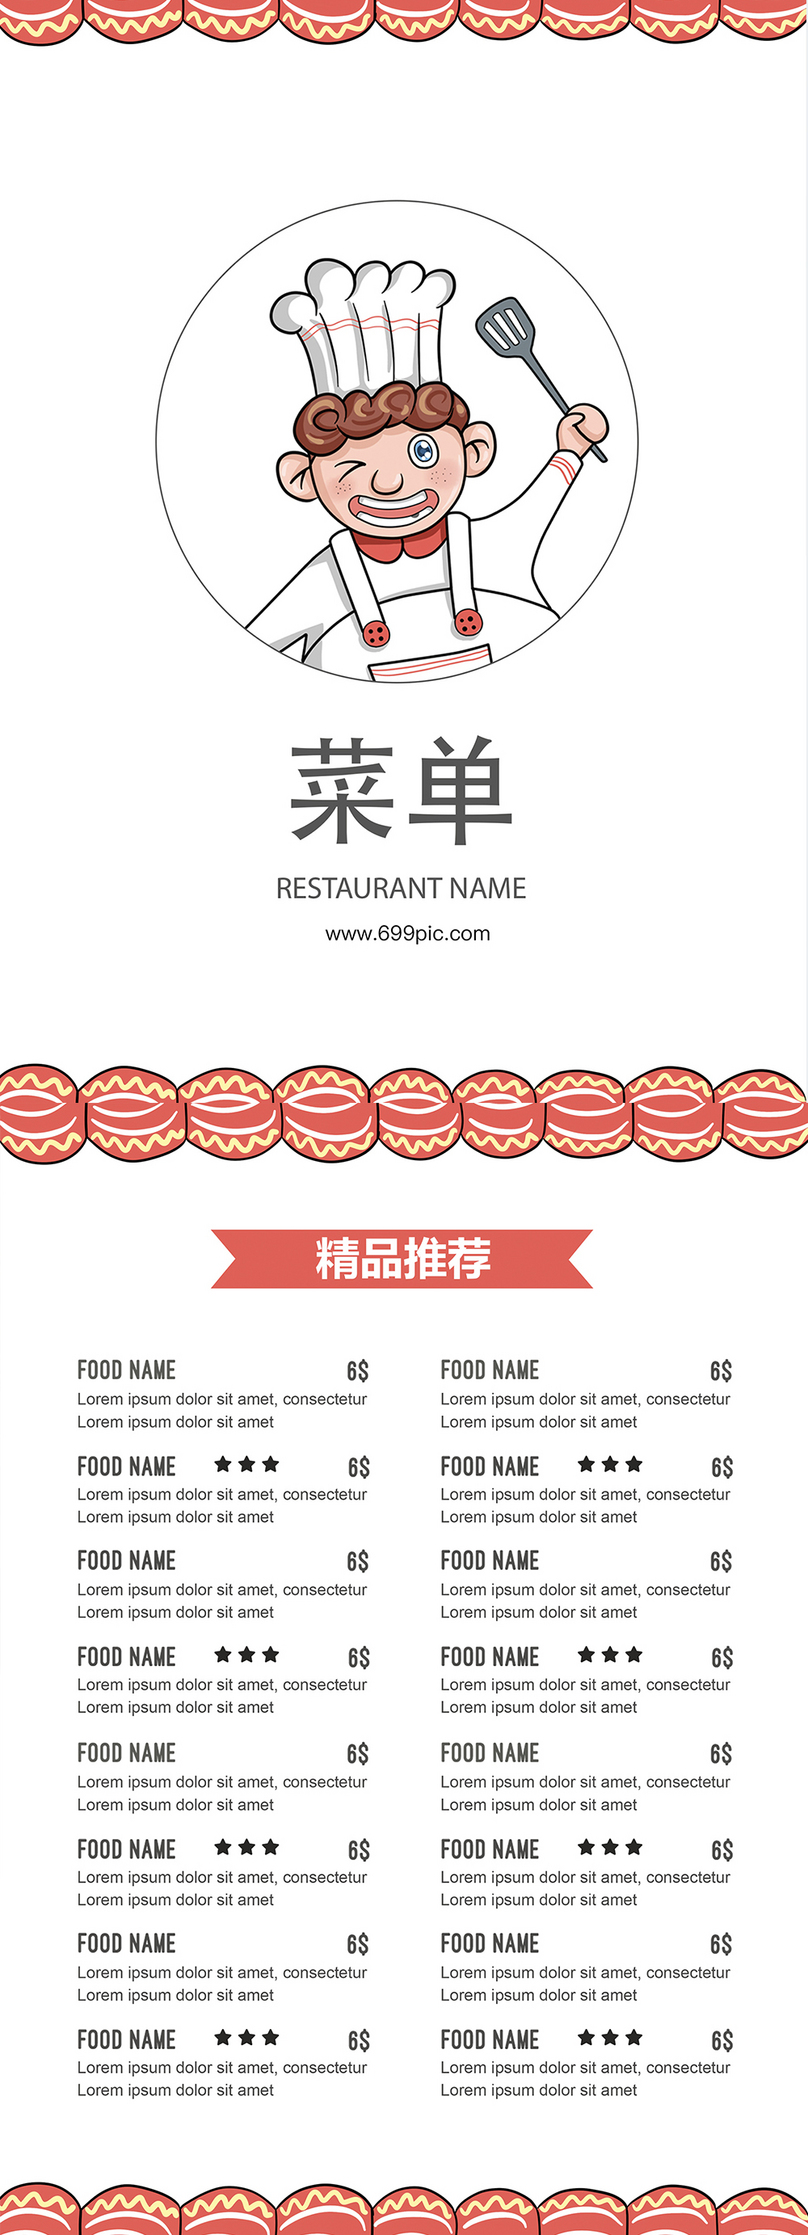 simple restaurant menu template image picture free download